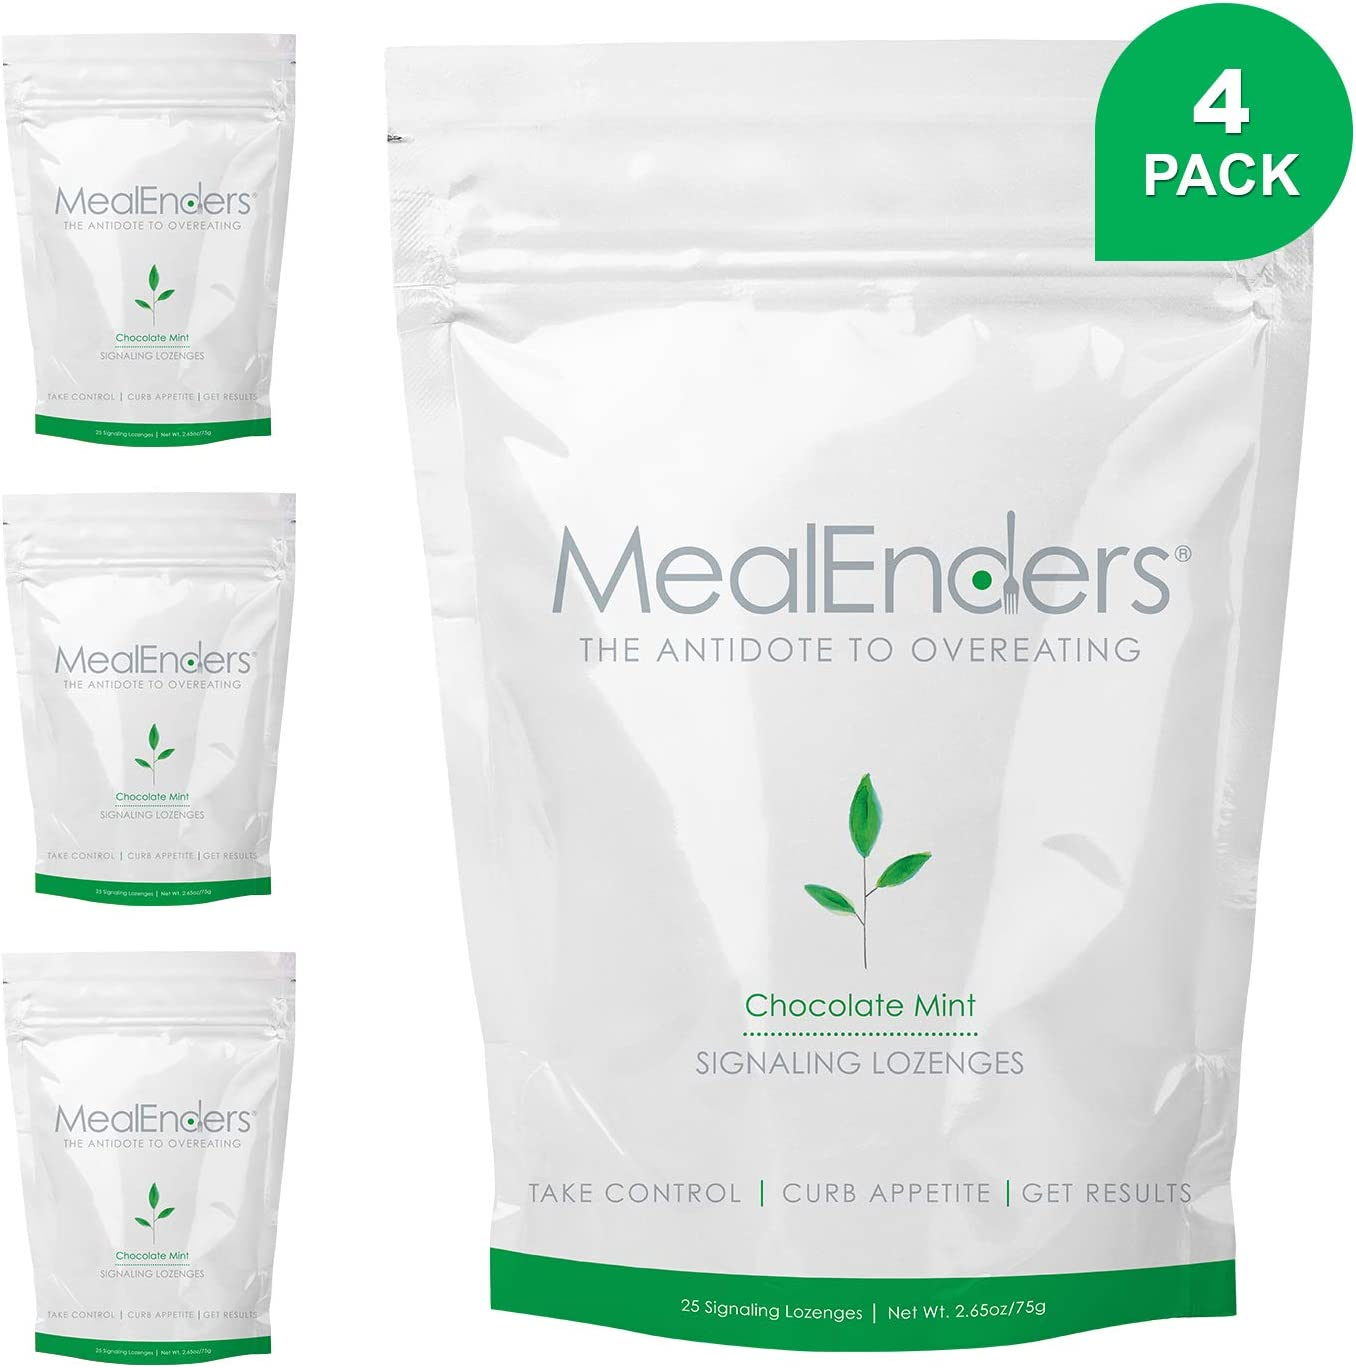 MealEnders Cravings Control Lozenges | Stop Overeating, Curb Cravings and Reduce Snacking | 25-Count Bag (Pack of 4) (Chocomint)